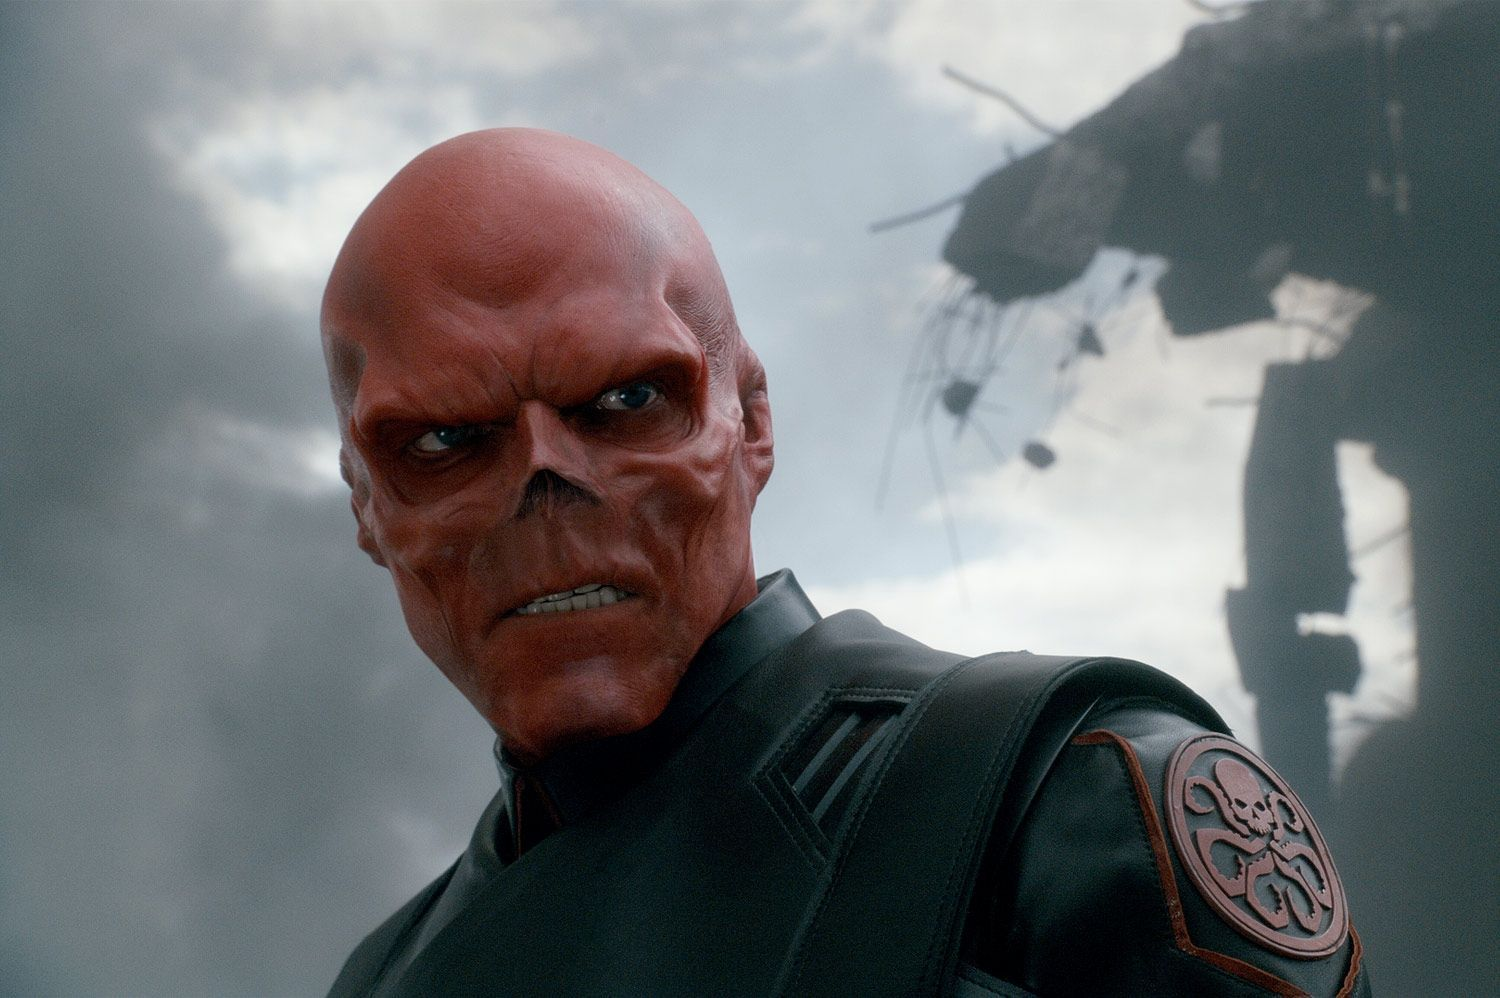 The Red Skull (Hugo Weaving) in Captain America: The First Avenger (2011)